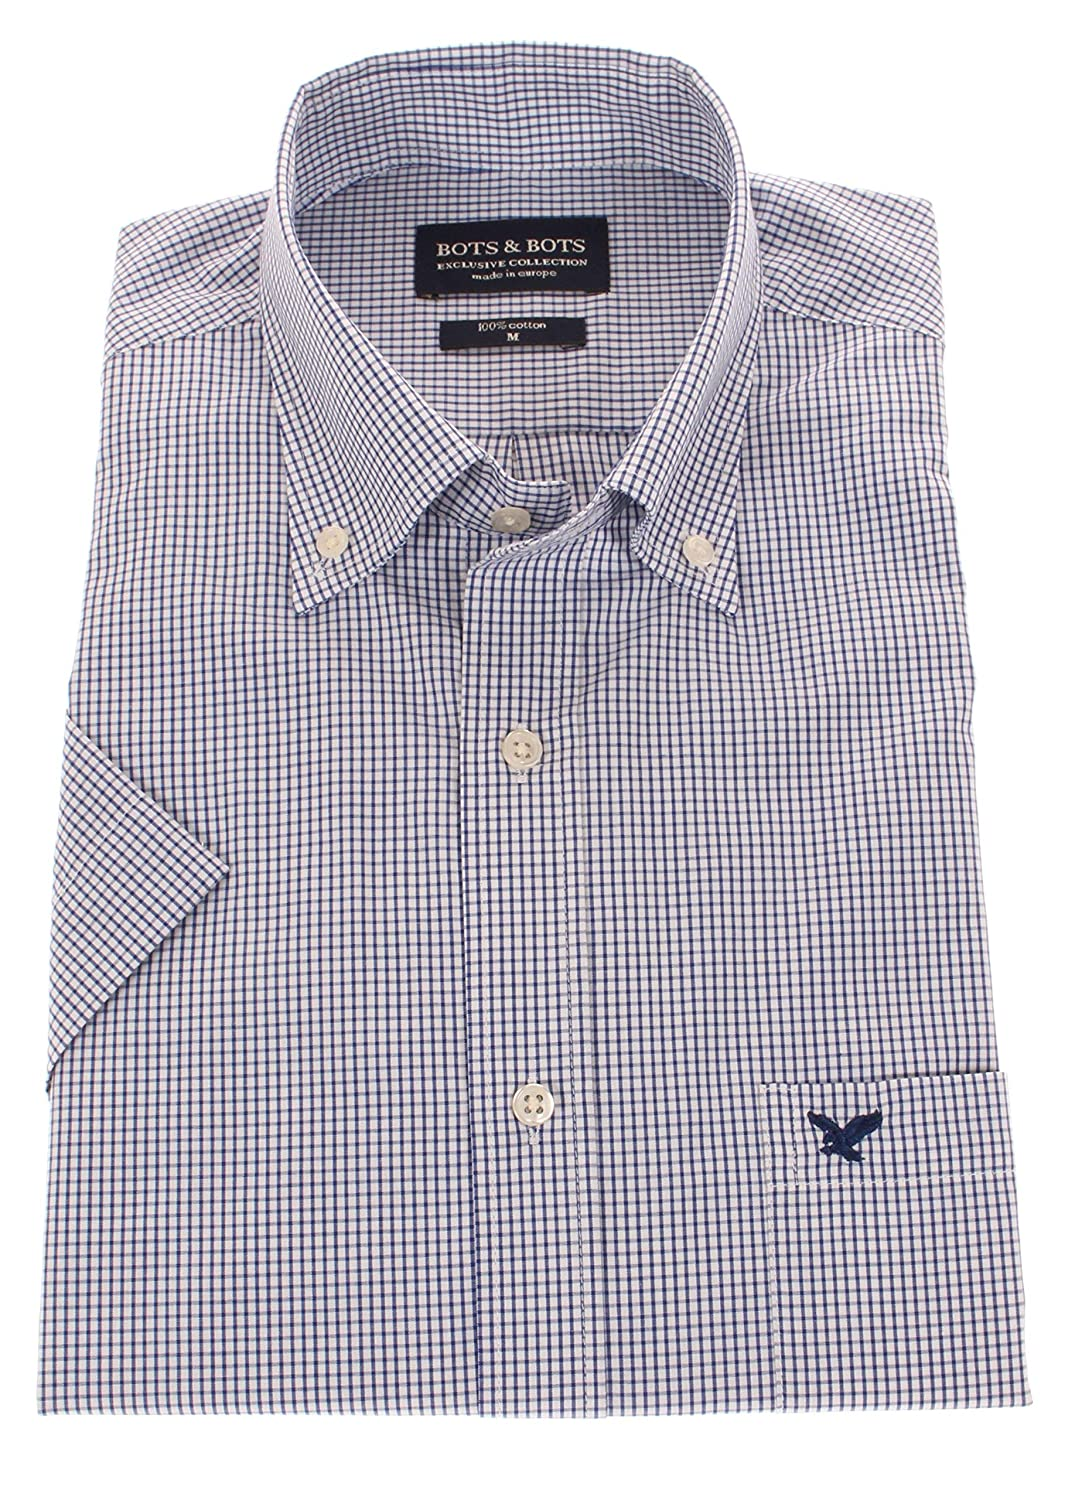 Cotone Bots /& Bots 197035 Camicia Uomo Normal Fit Button Down Manica Corta